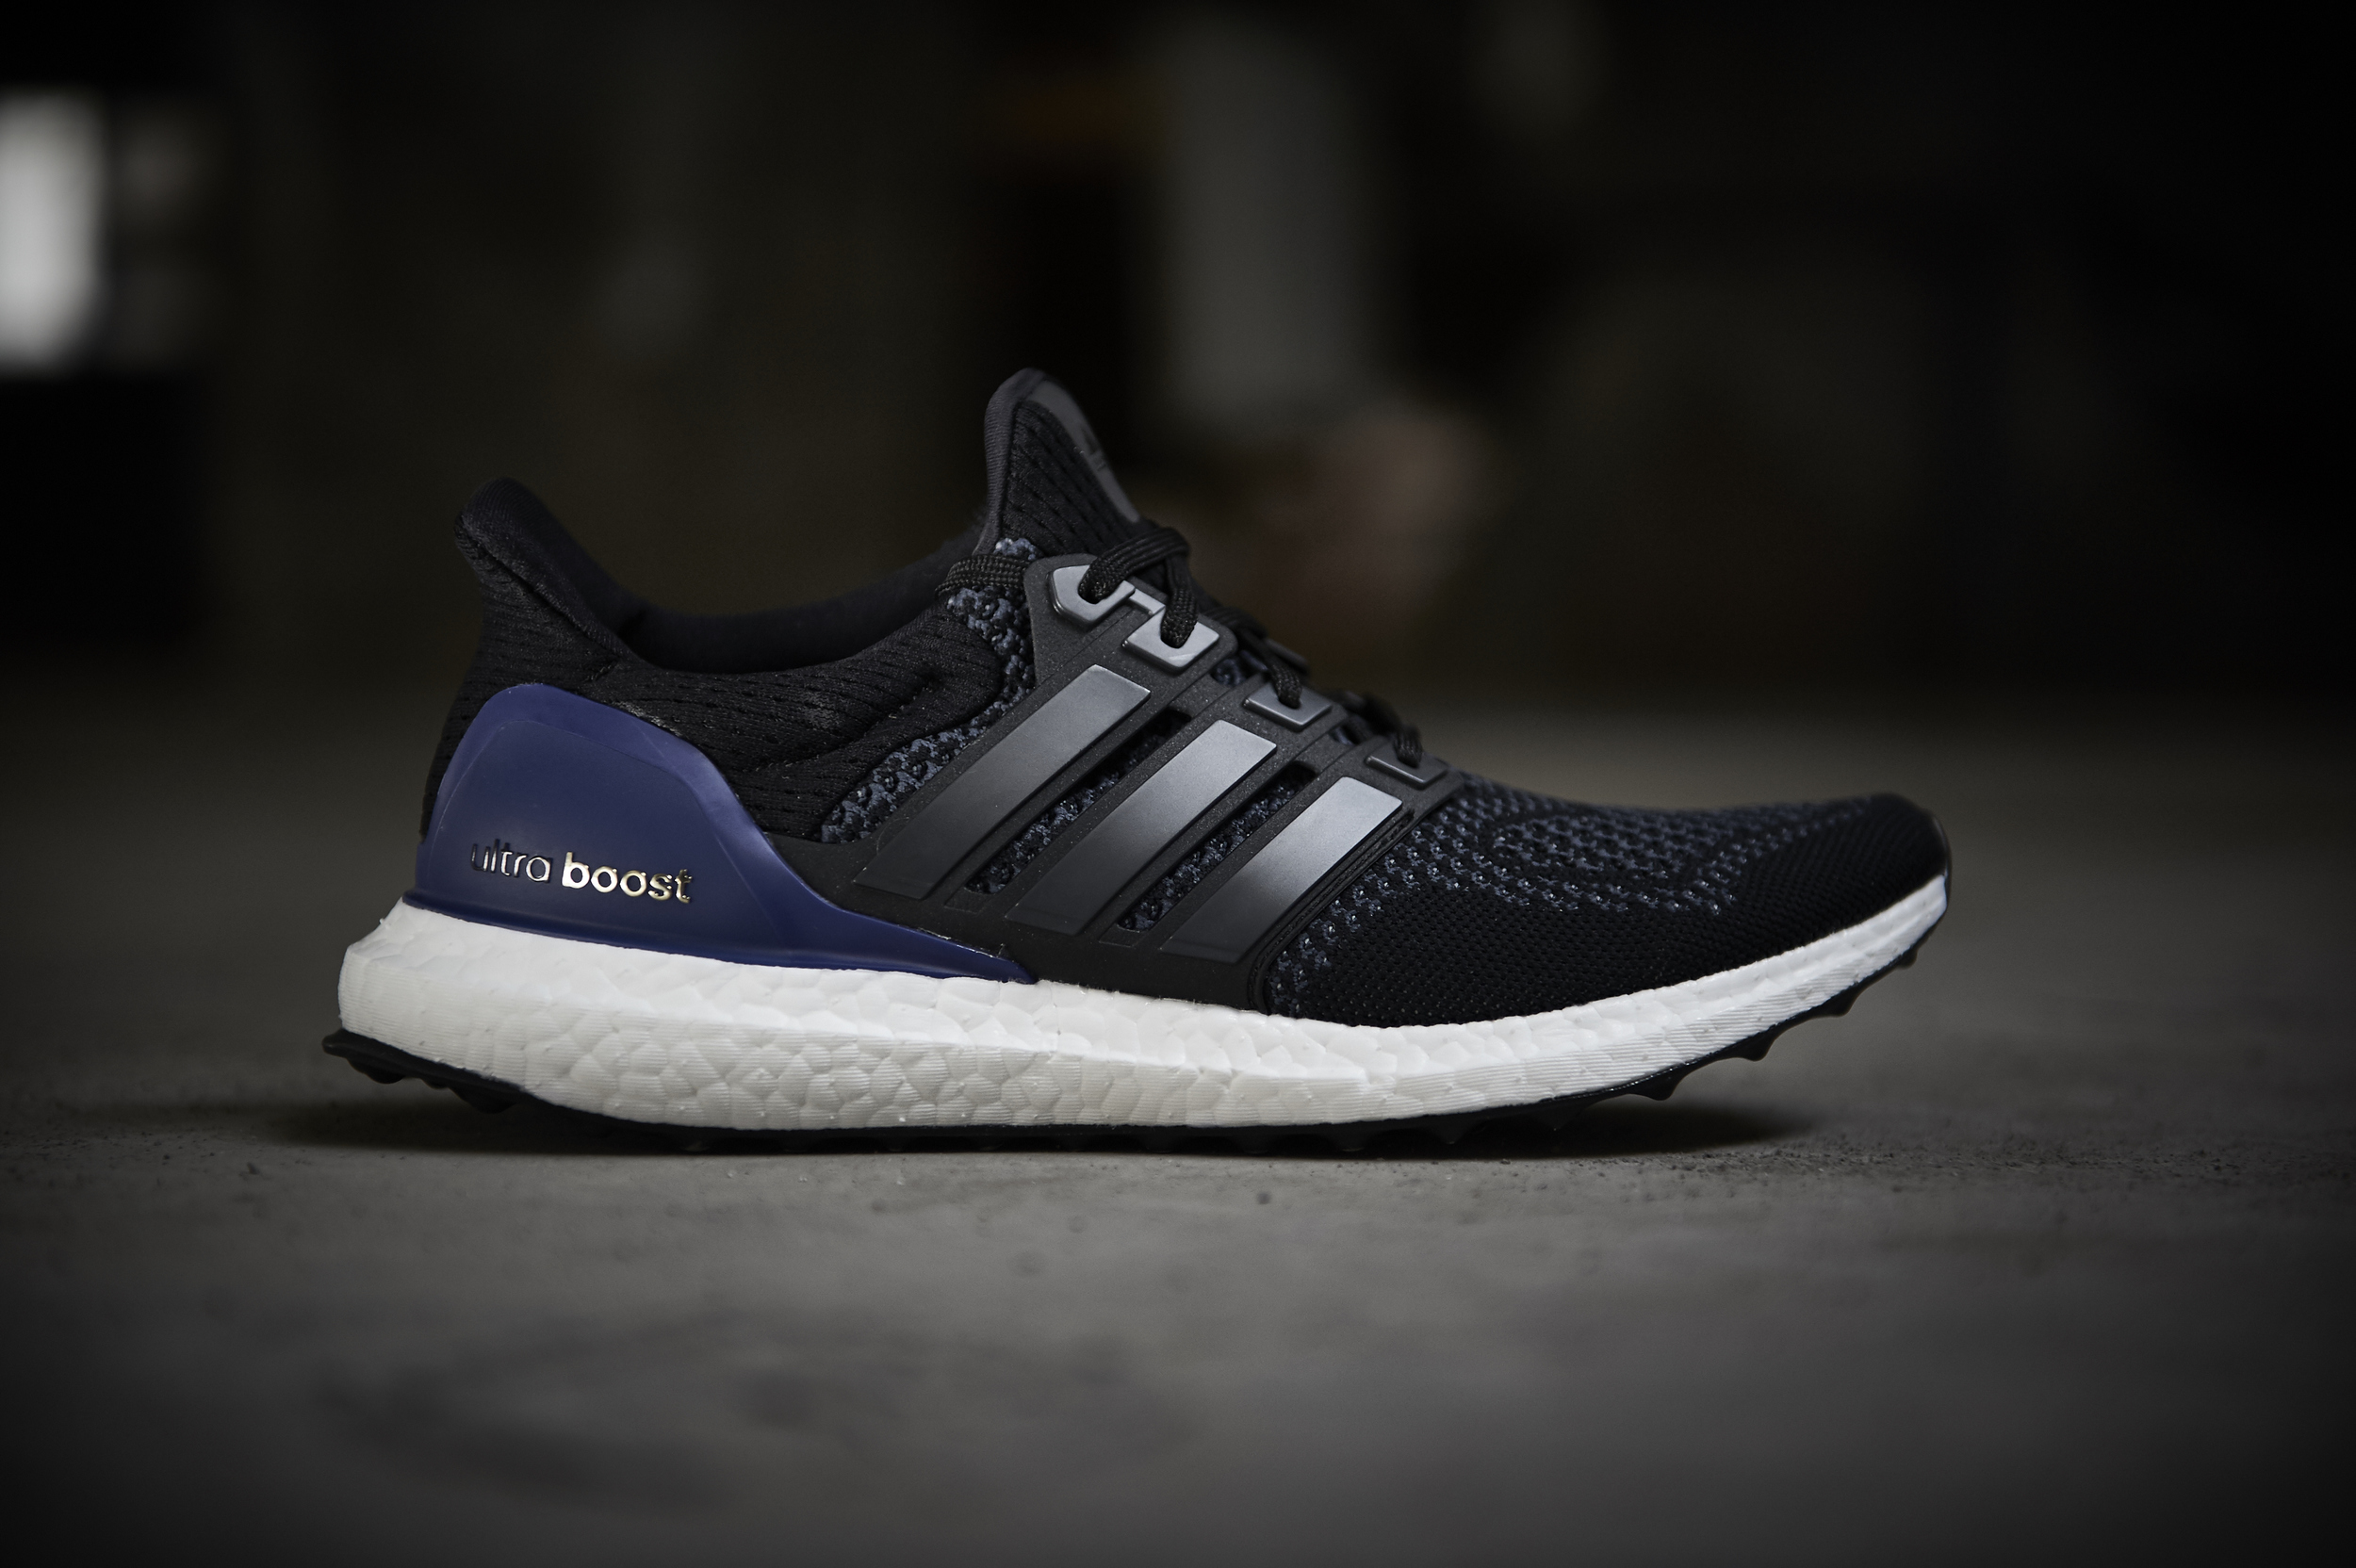 adidas Ultra BOOST. The Greatest Running Shoe Ever